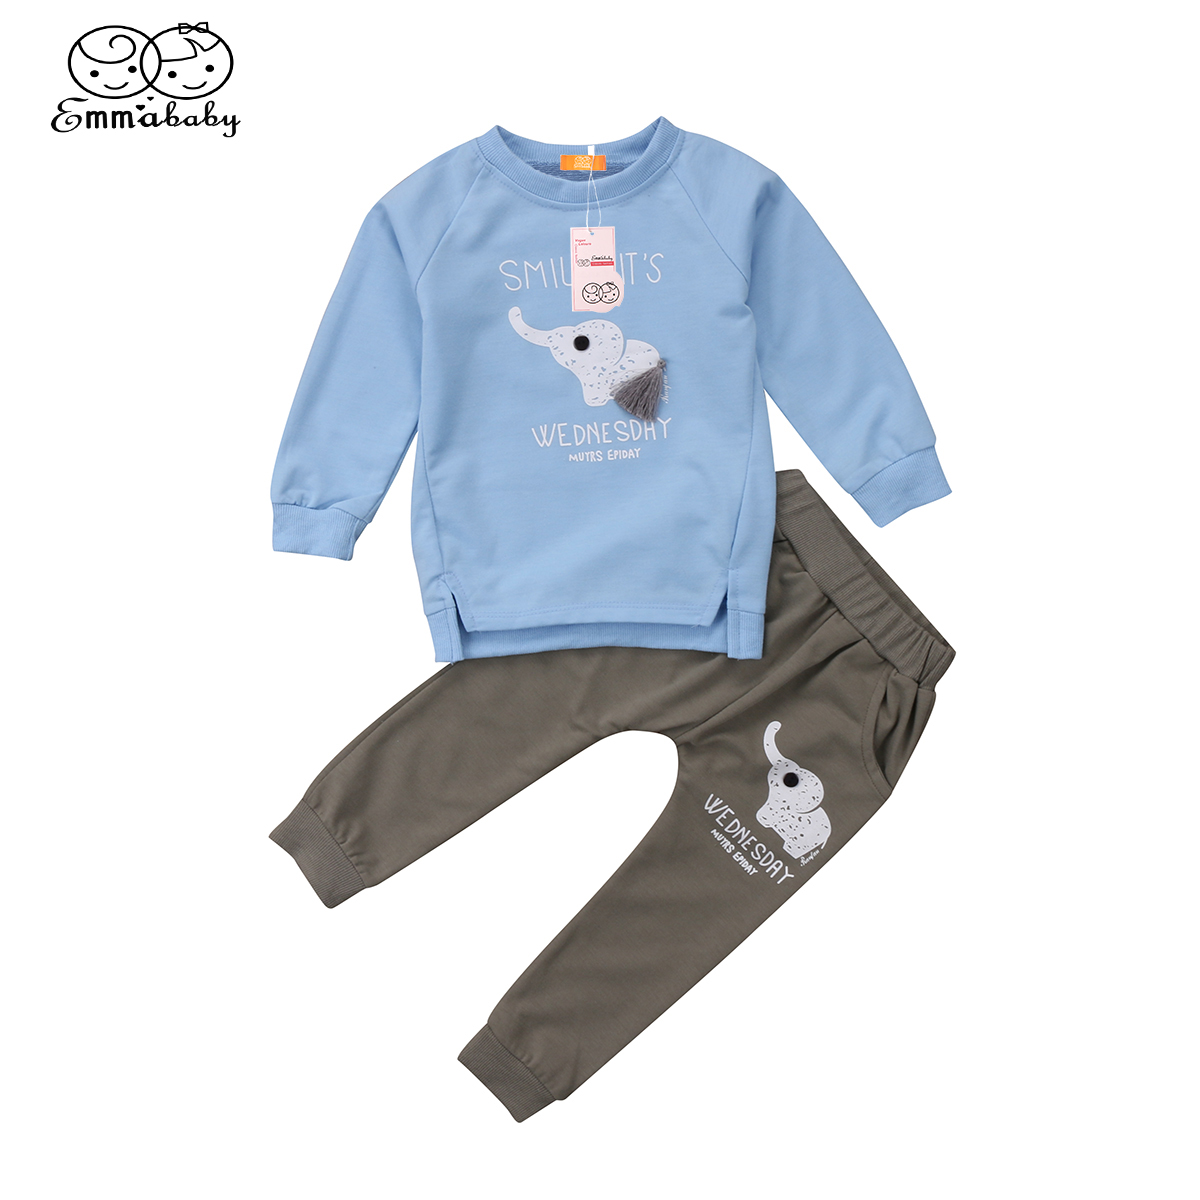 New arrival cute babies clothes Newborn Infant Baby Girls Boy Outfits set long sleeve cartoon elephant t-shirts +long Pants Set